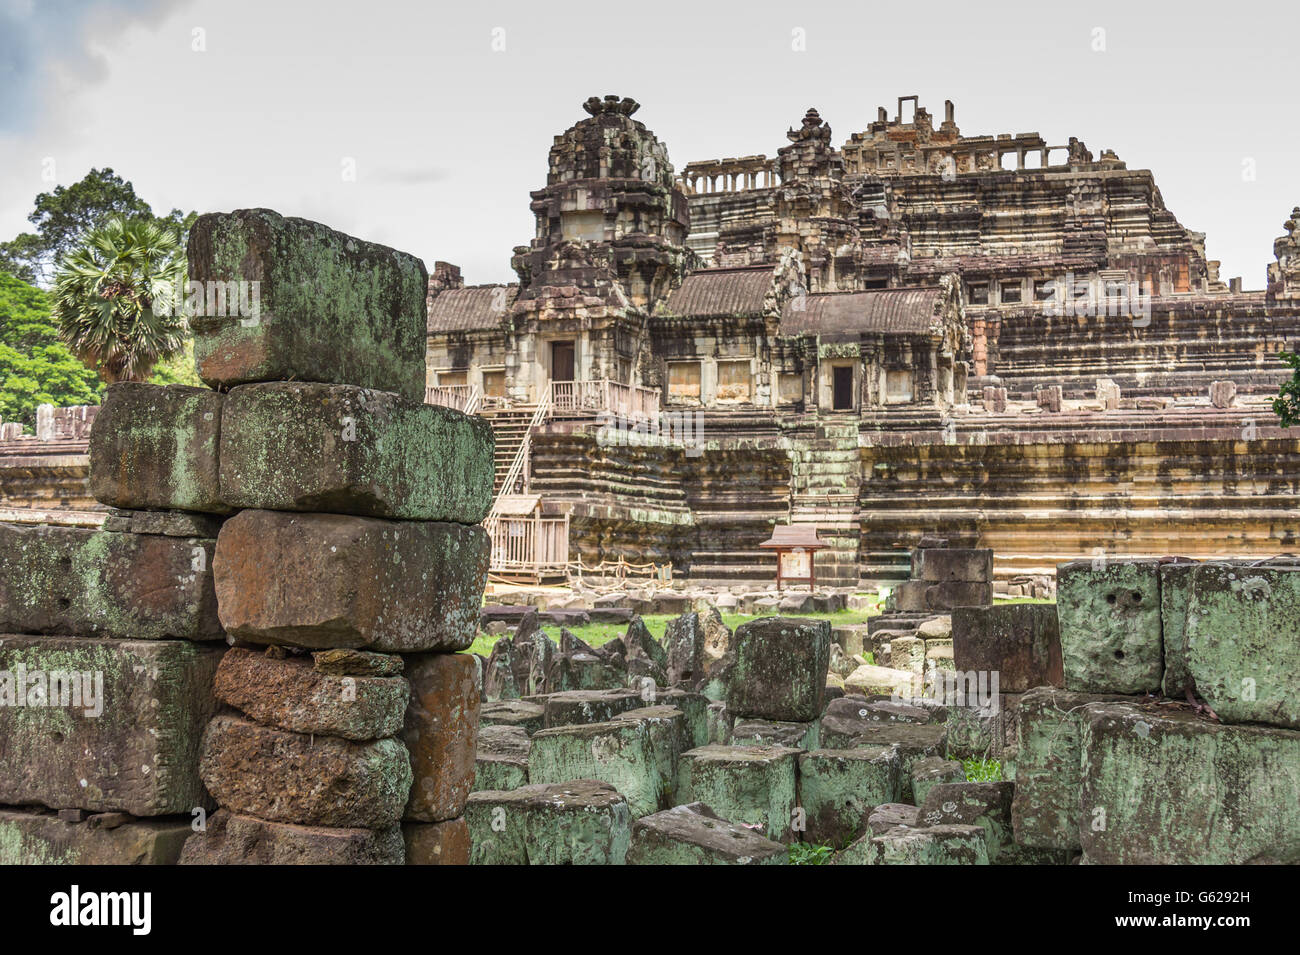 The ruins of Bayon temples in Cambodia - Stock Image